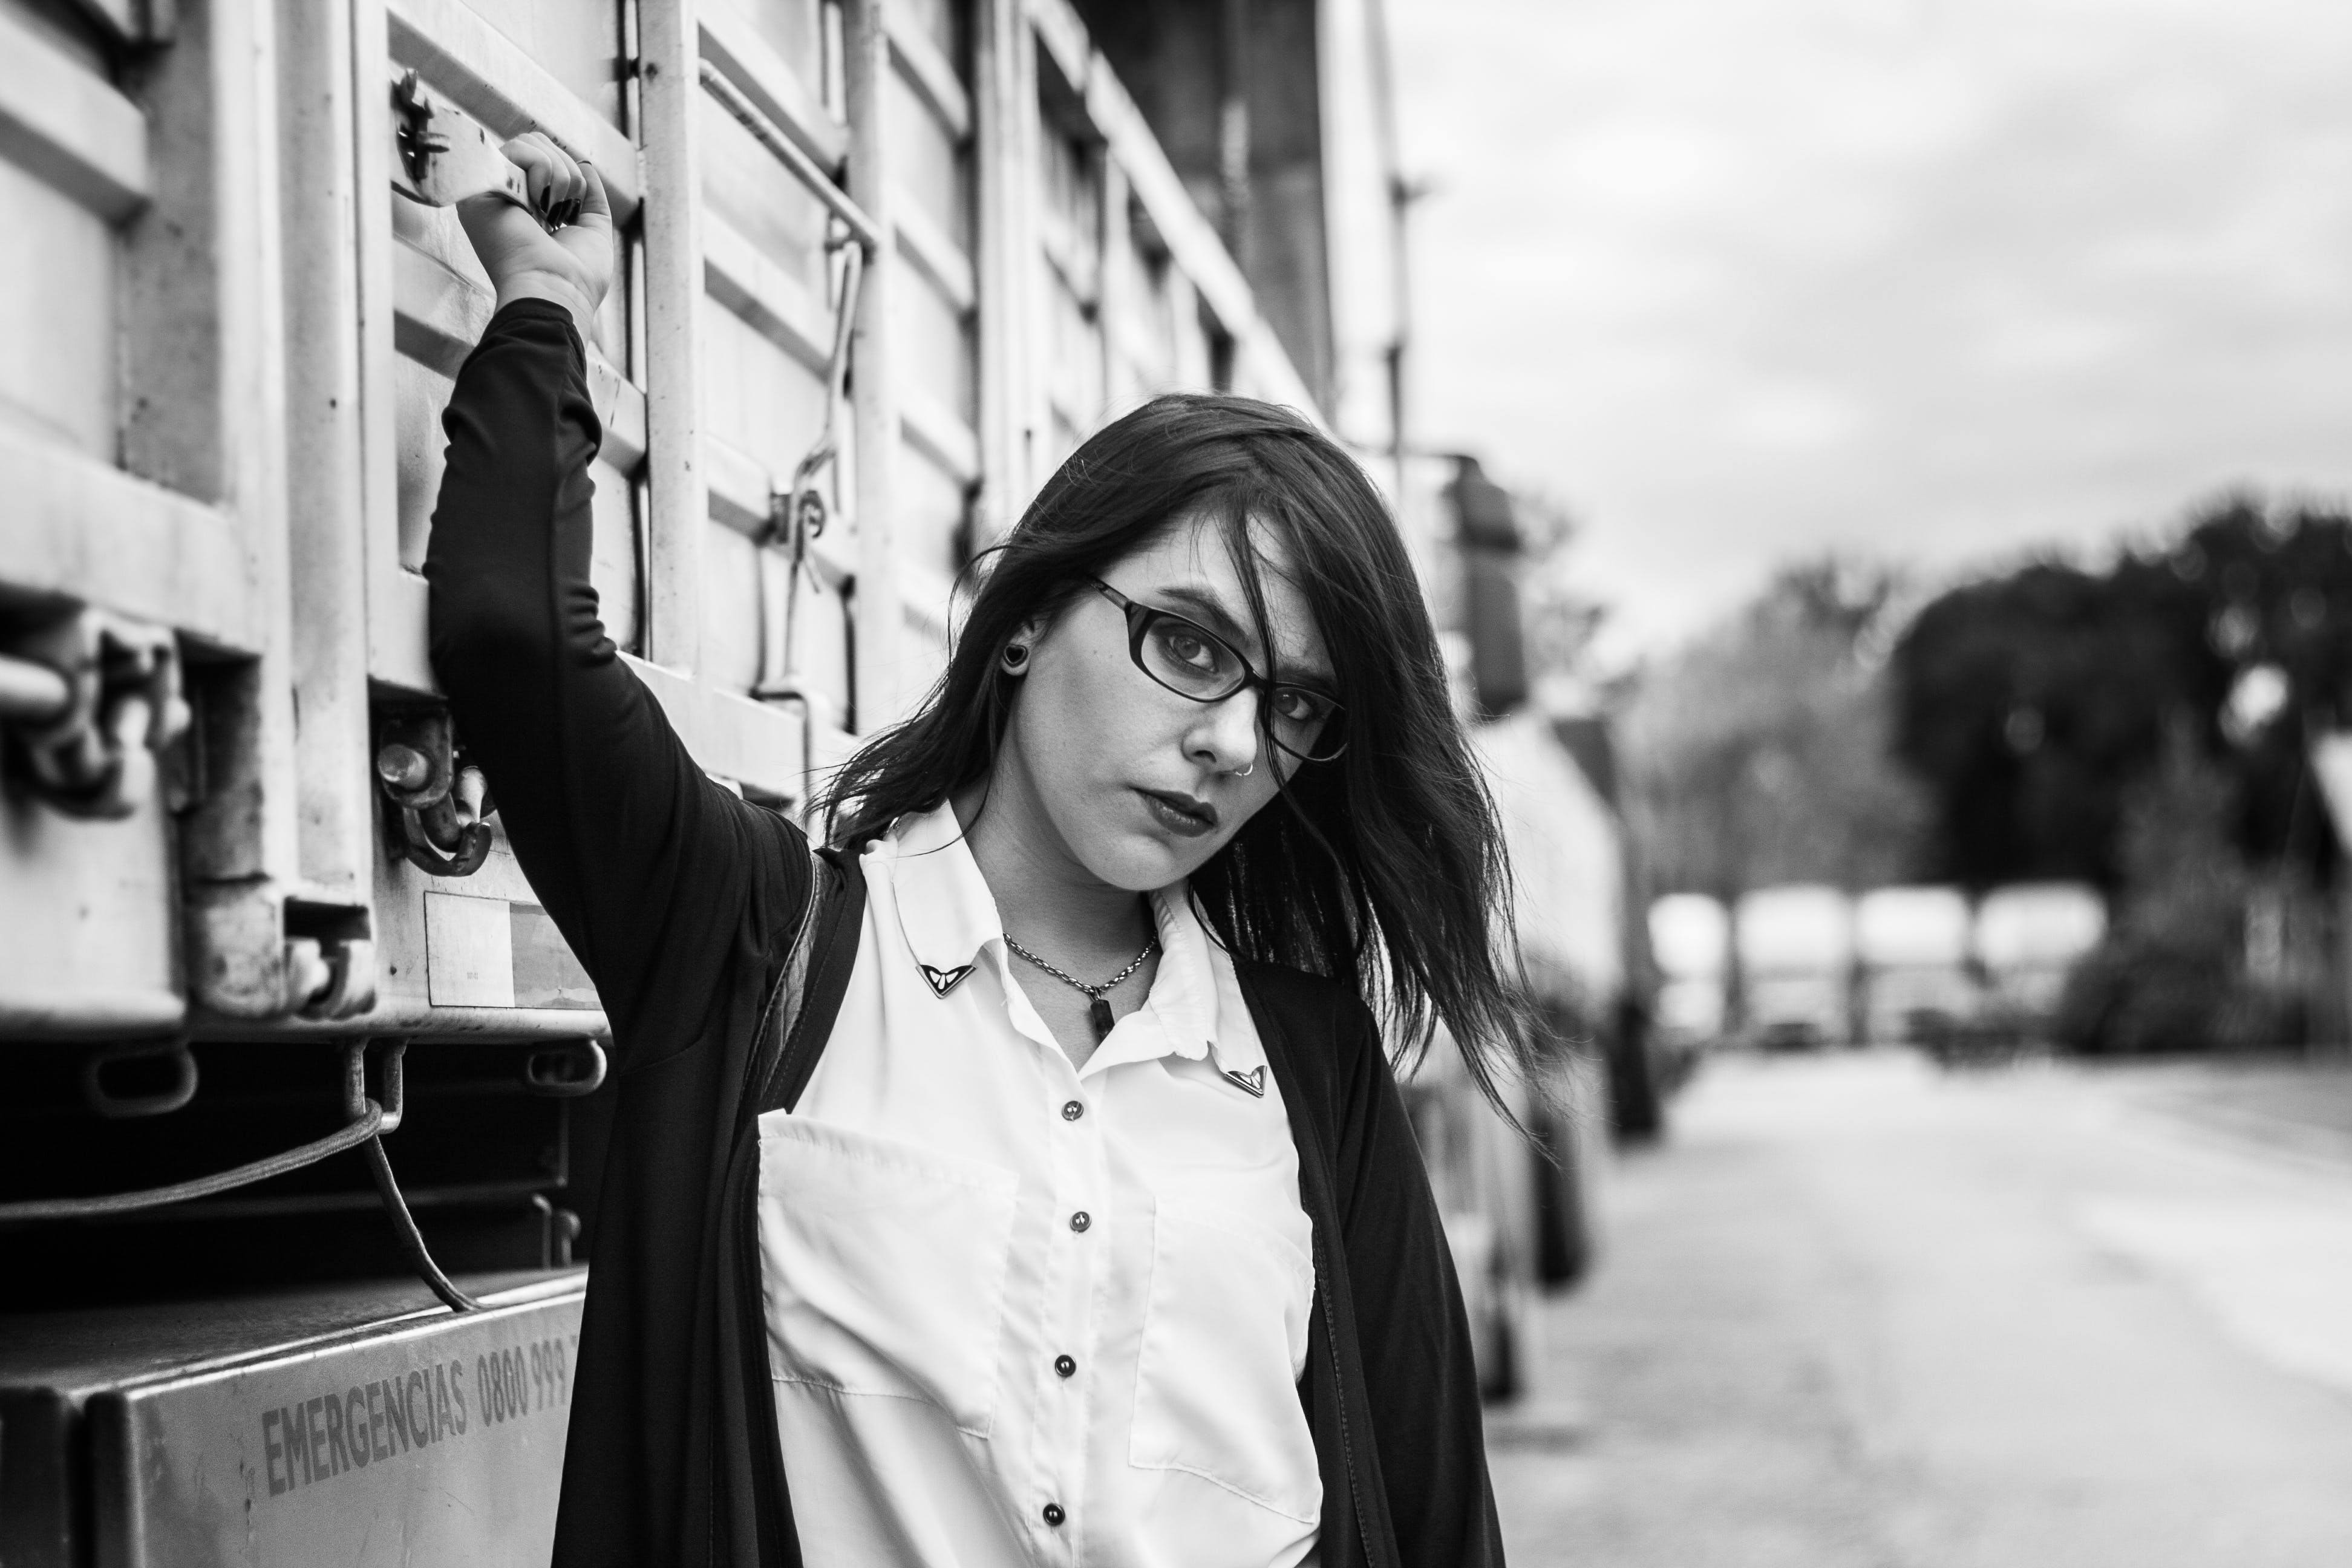 Woman With Zip-up Jacket Stand Beside Truck